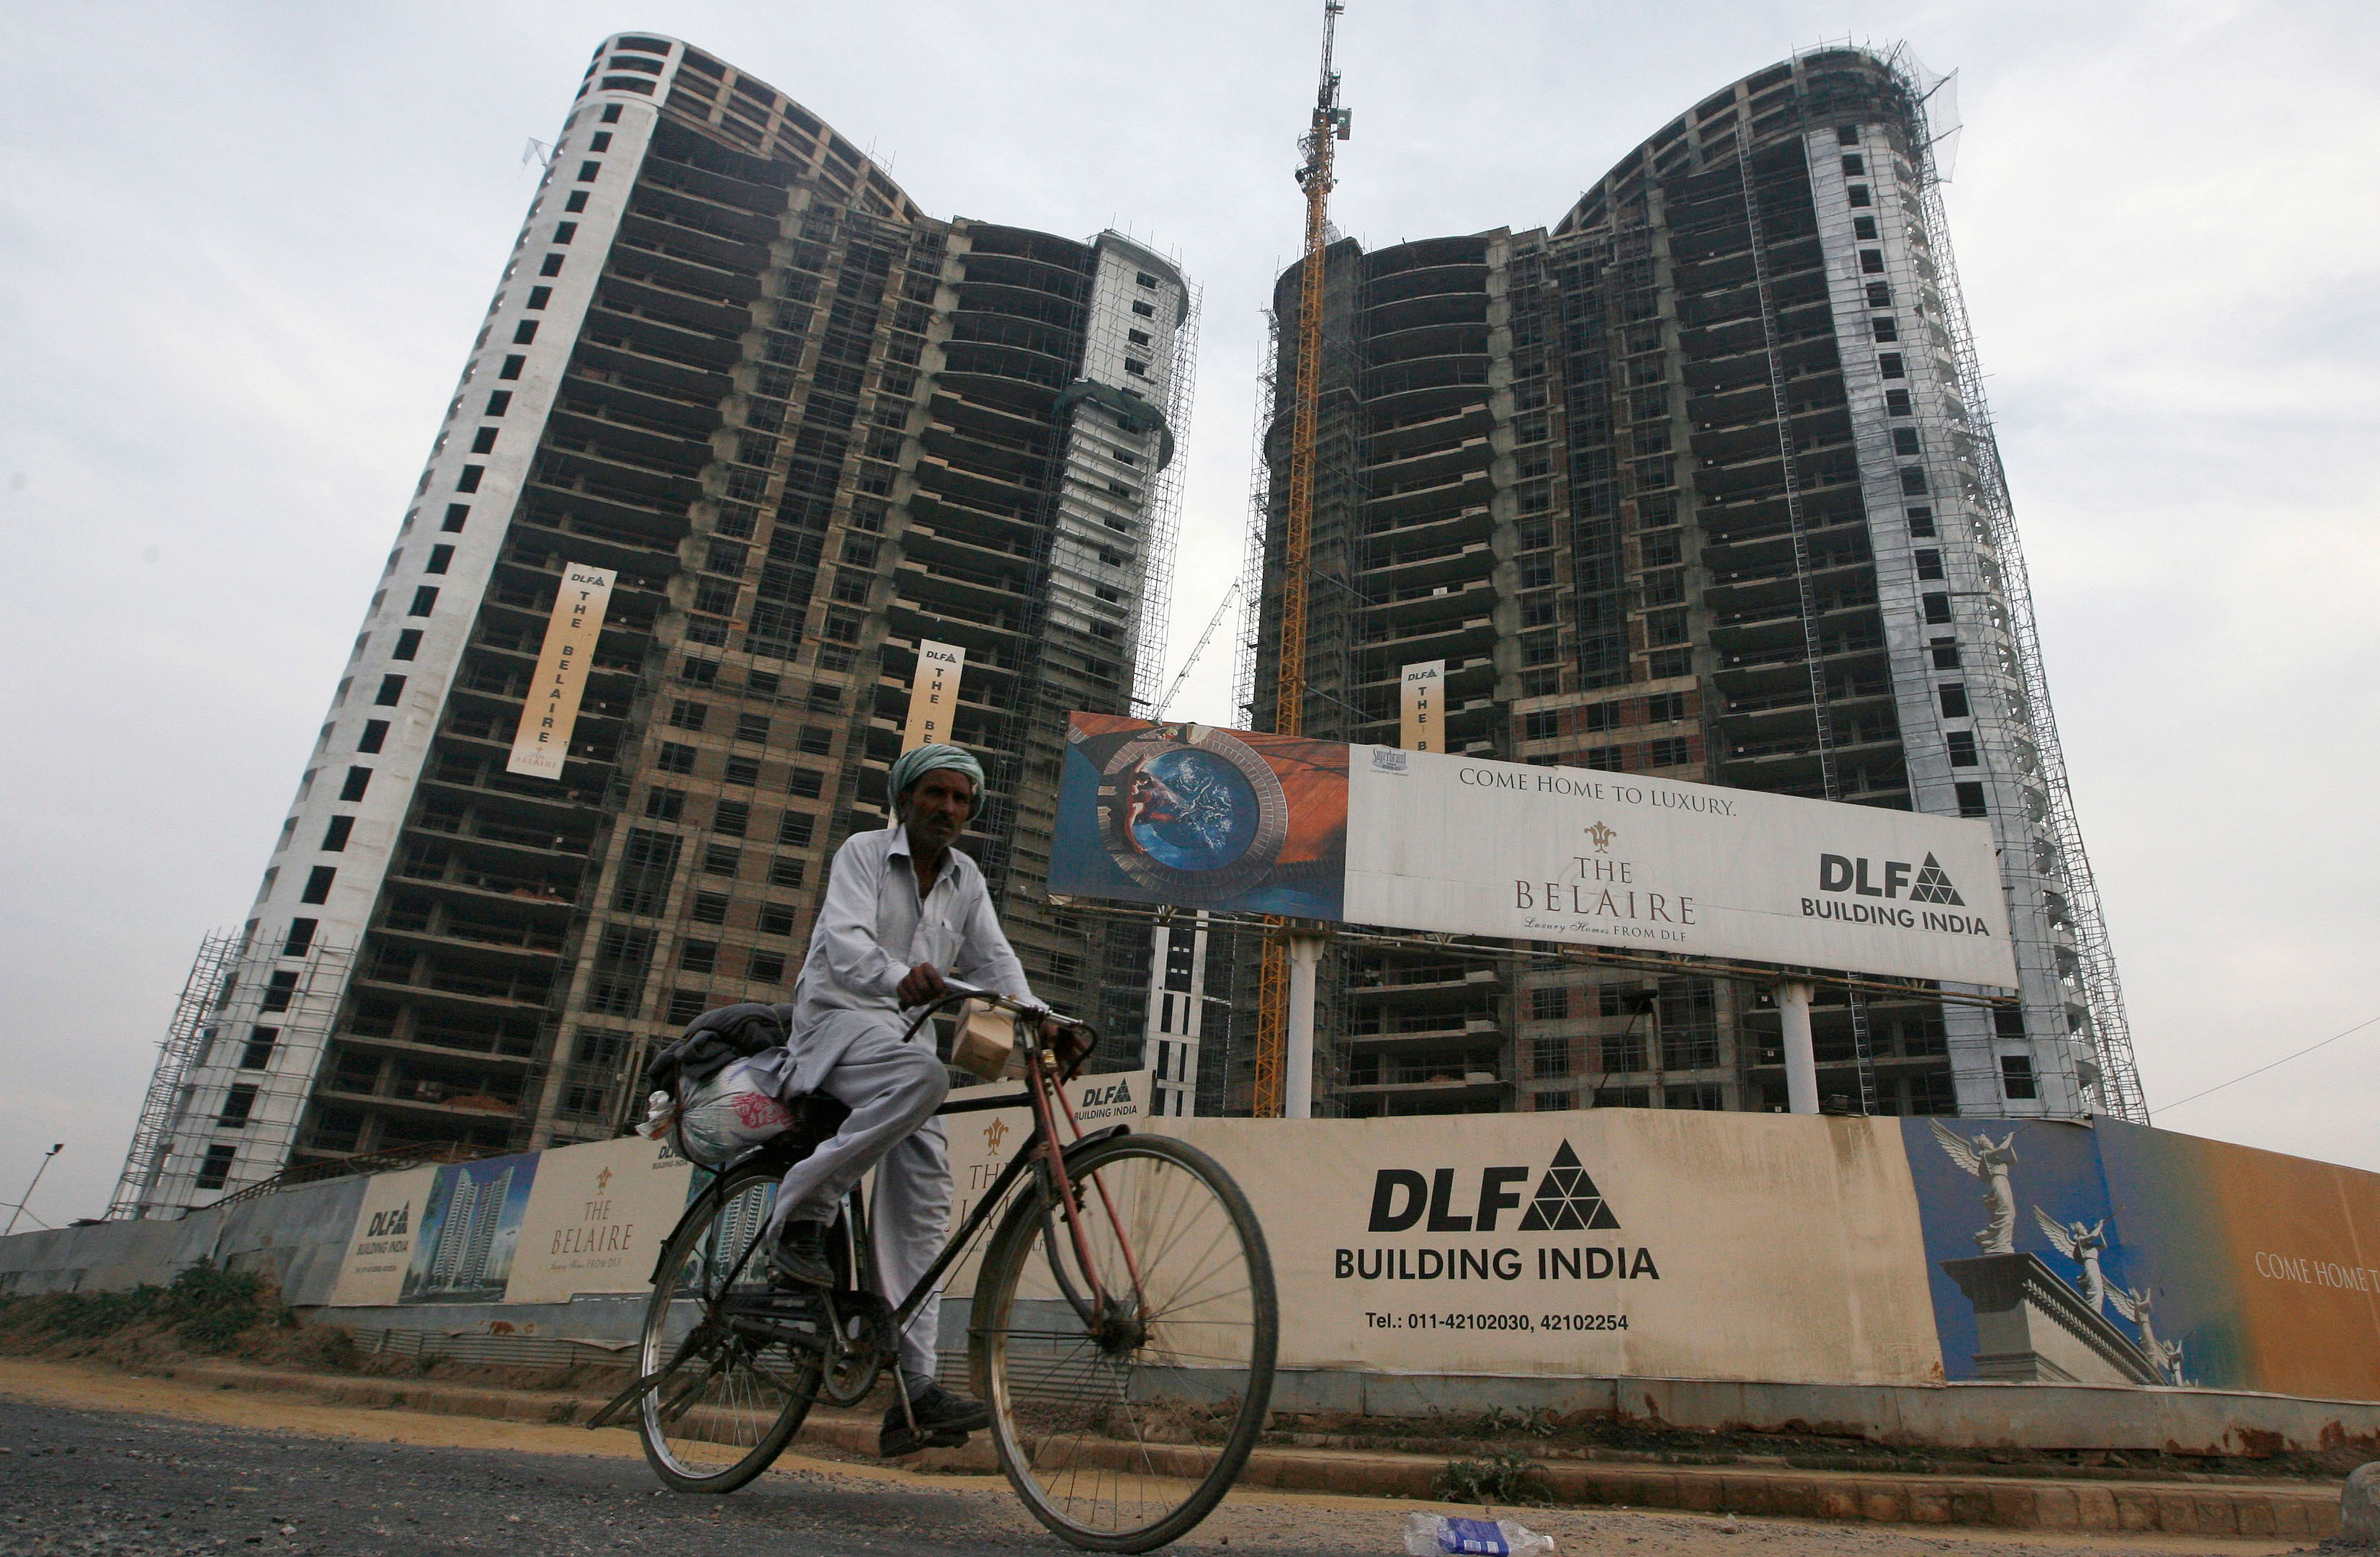 DLF shares soar on Q1 revenue growth even as profit shrinks on higher interest cost